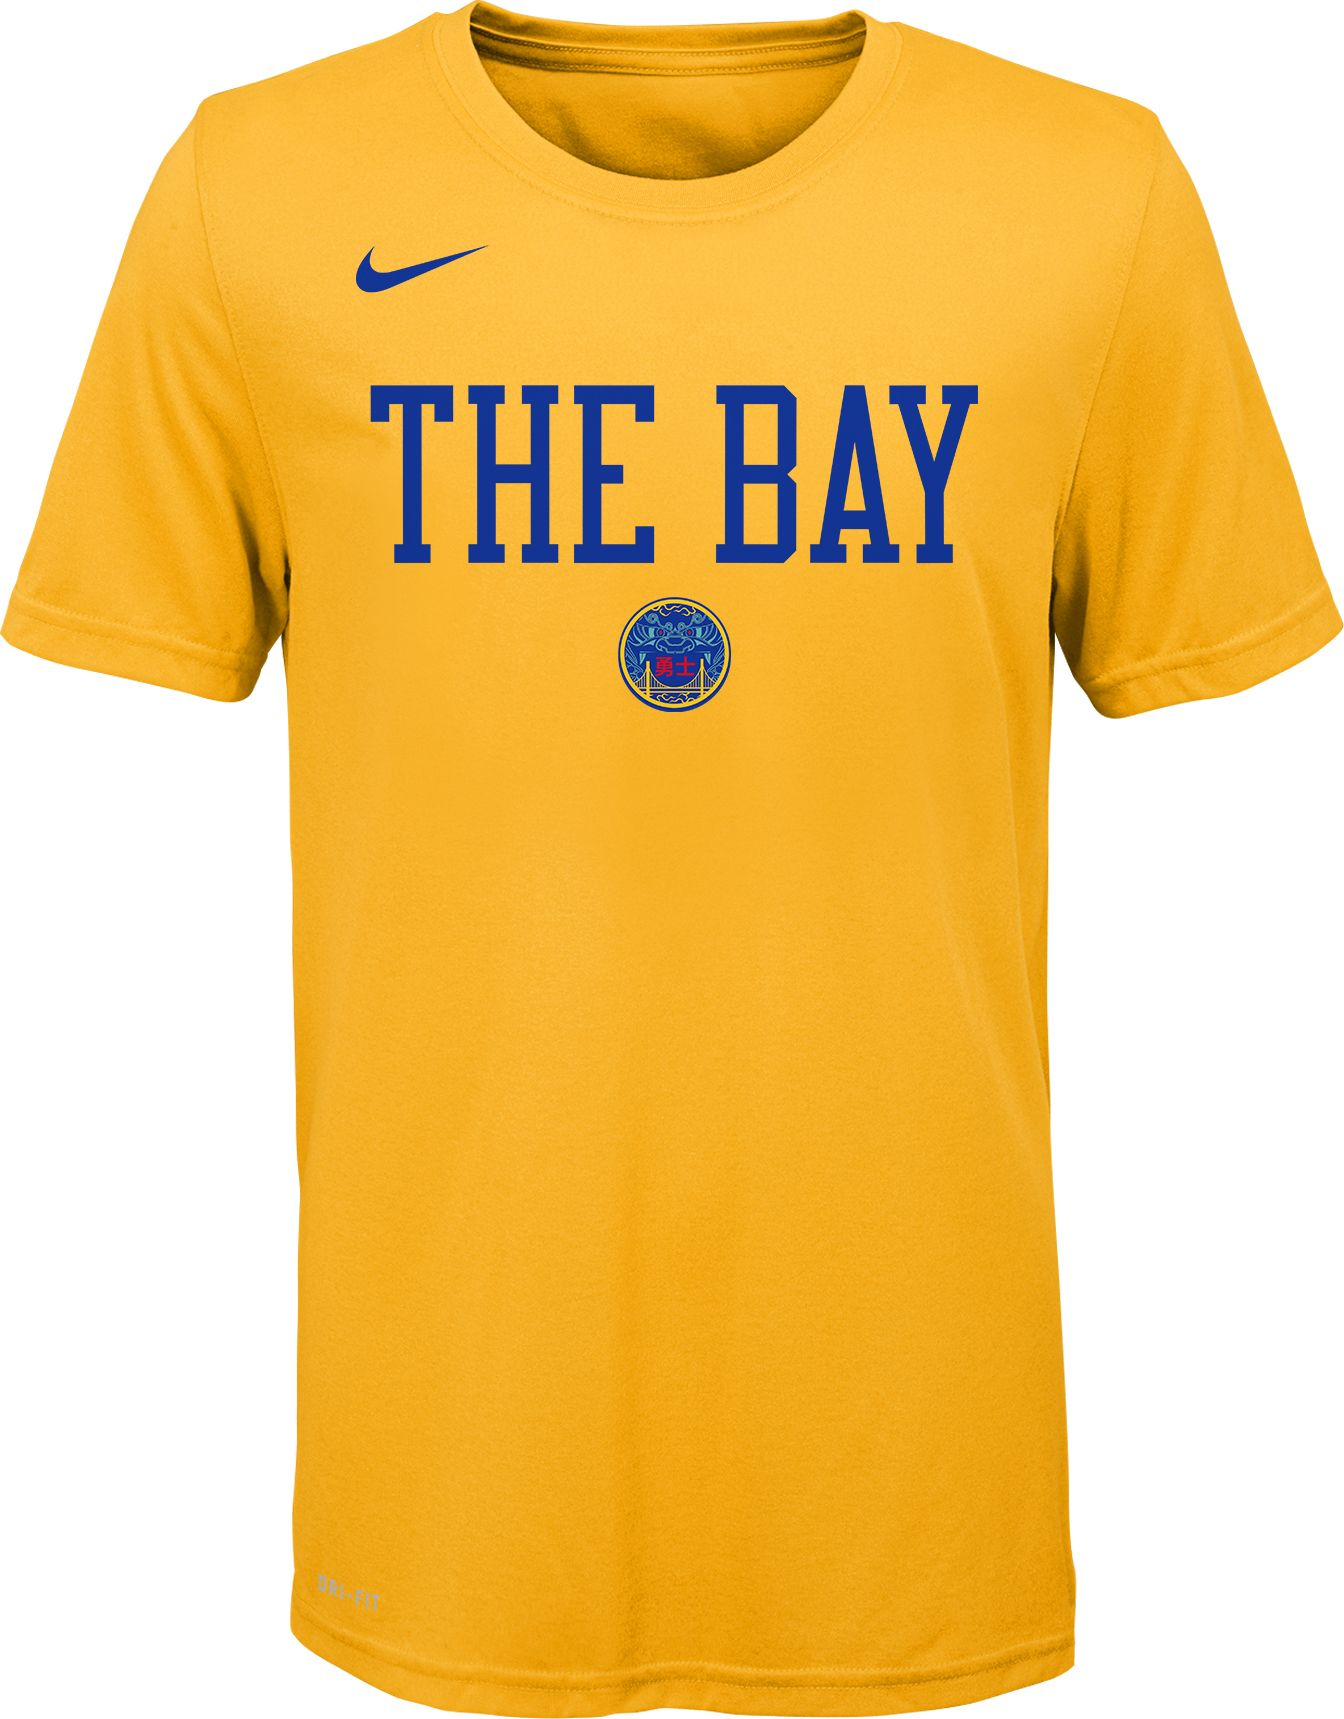 6a8f4d2d new uniforms are everywhere welcome to loud city mens golden state warriors;  noimagefound; noimagefound; nike ...